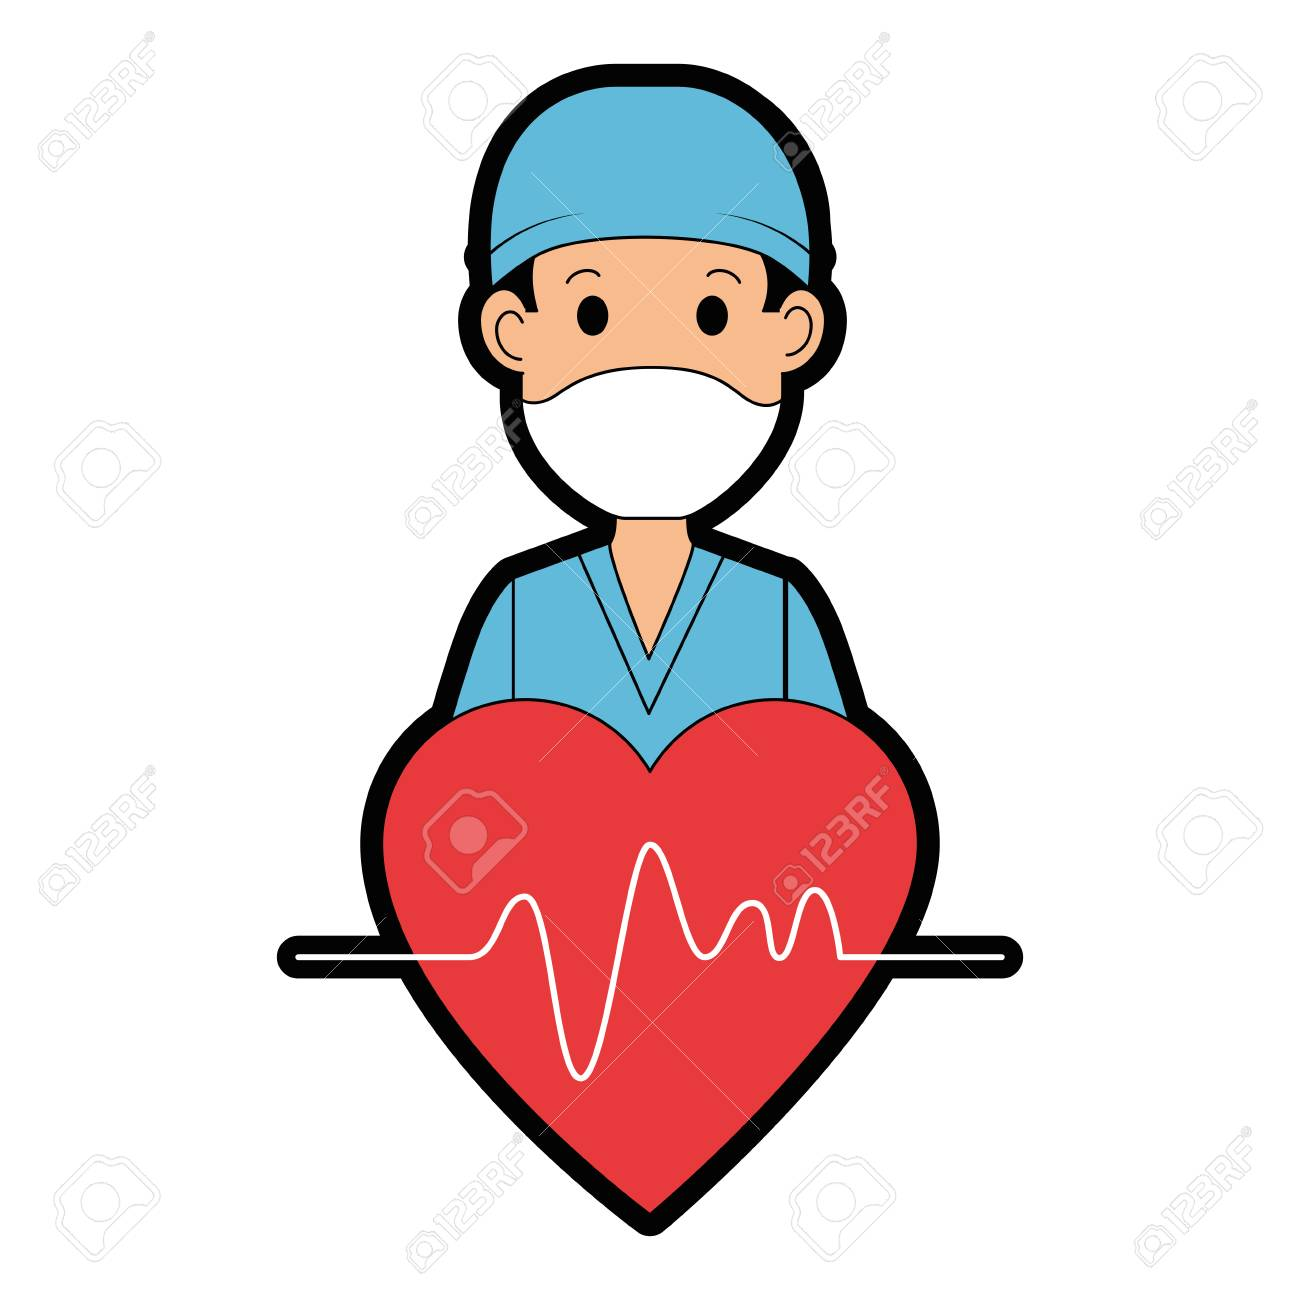 surgeon doctor with heart avatar character icon vector illustration design - 96428901